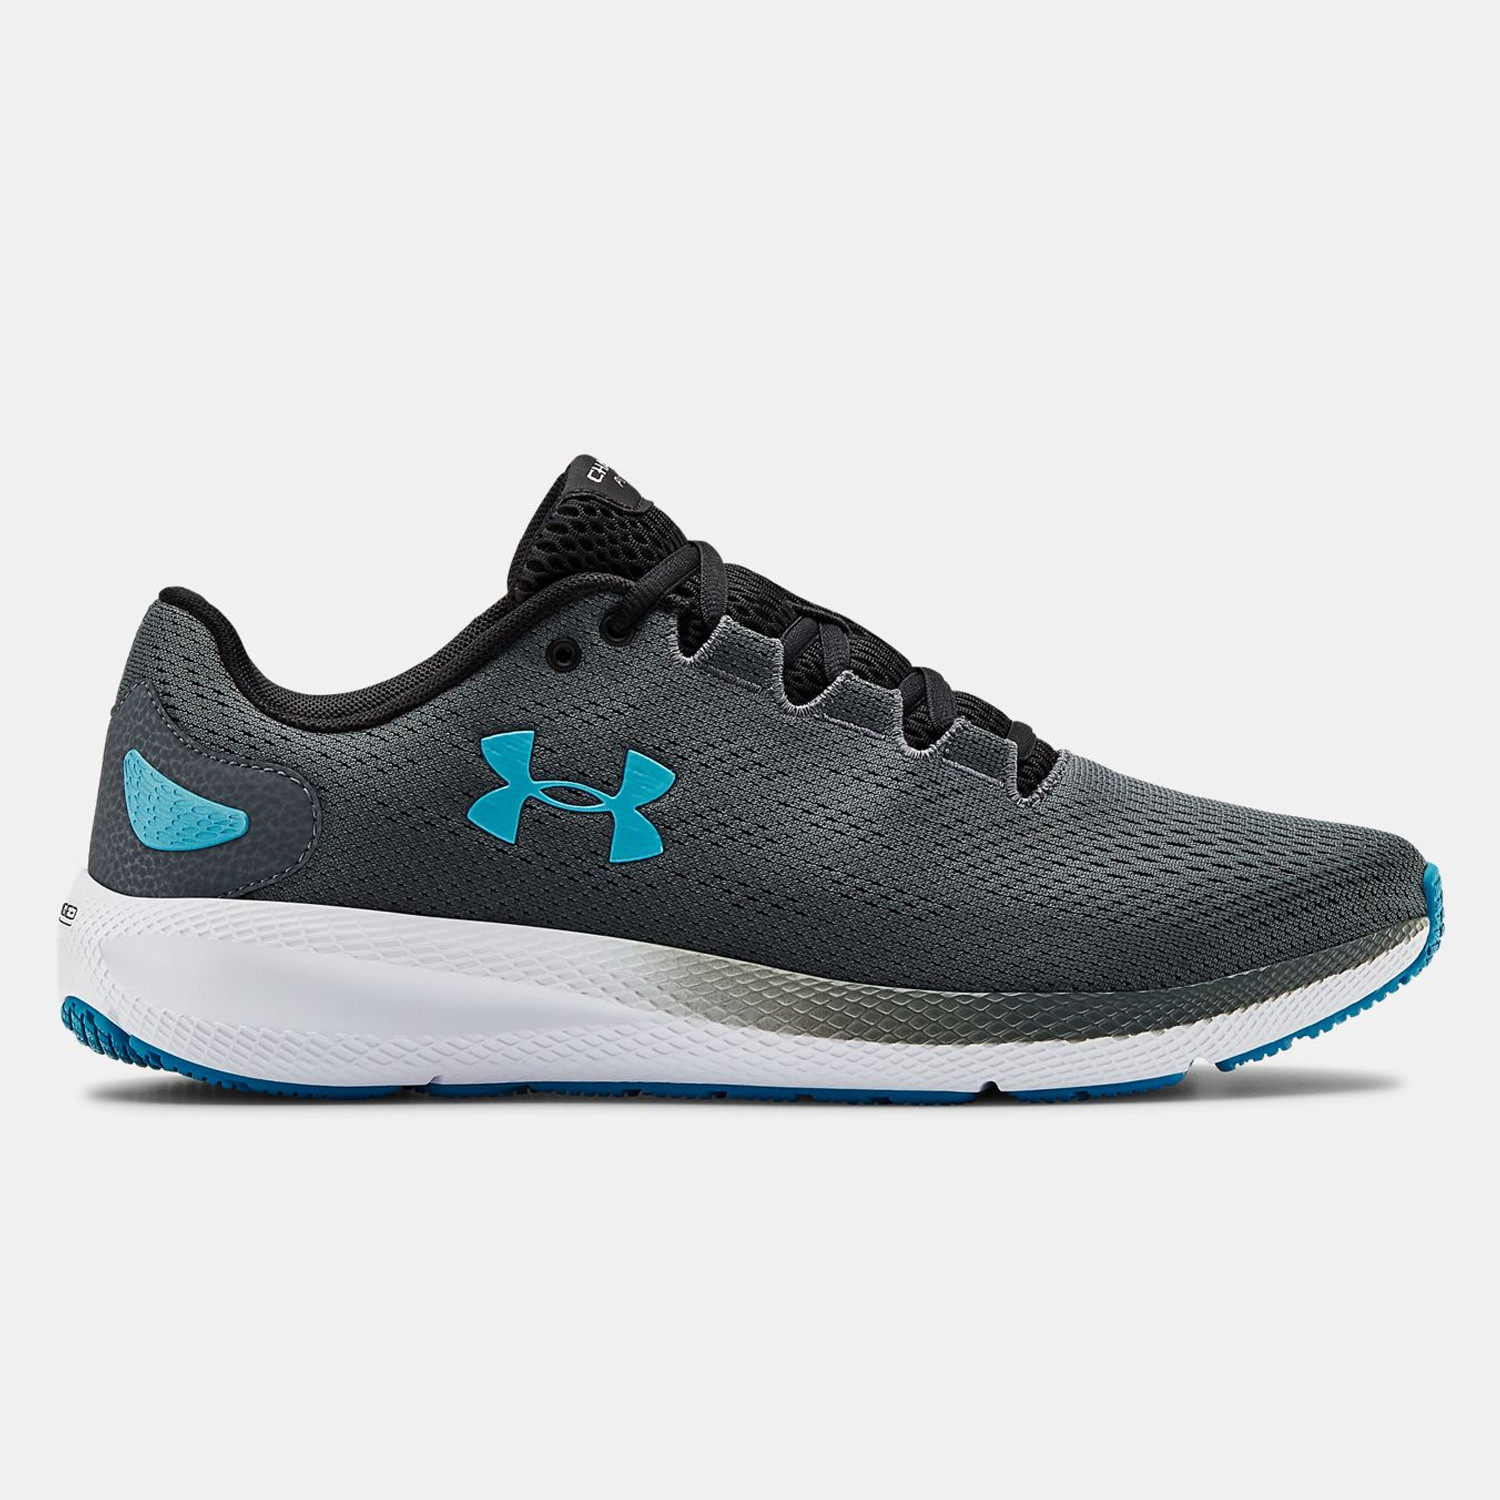 Under Armour Charged Pursuit 2 Men's Shoes (9000047925_44230)